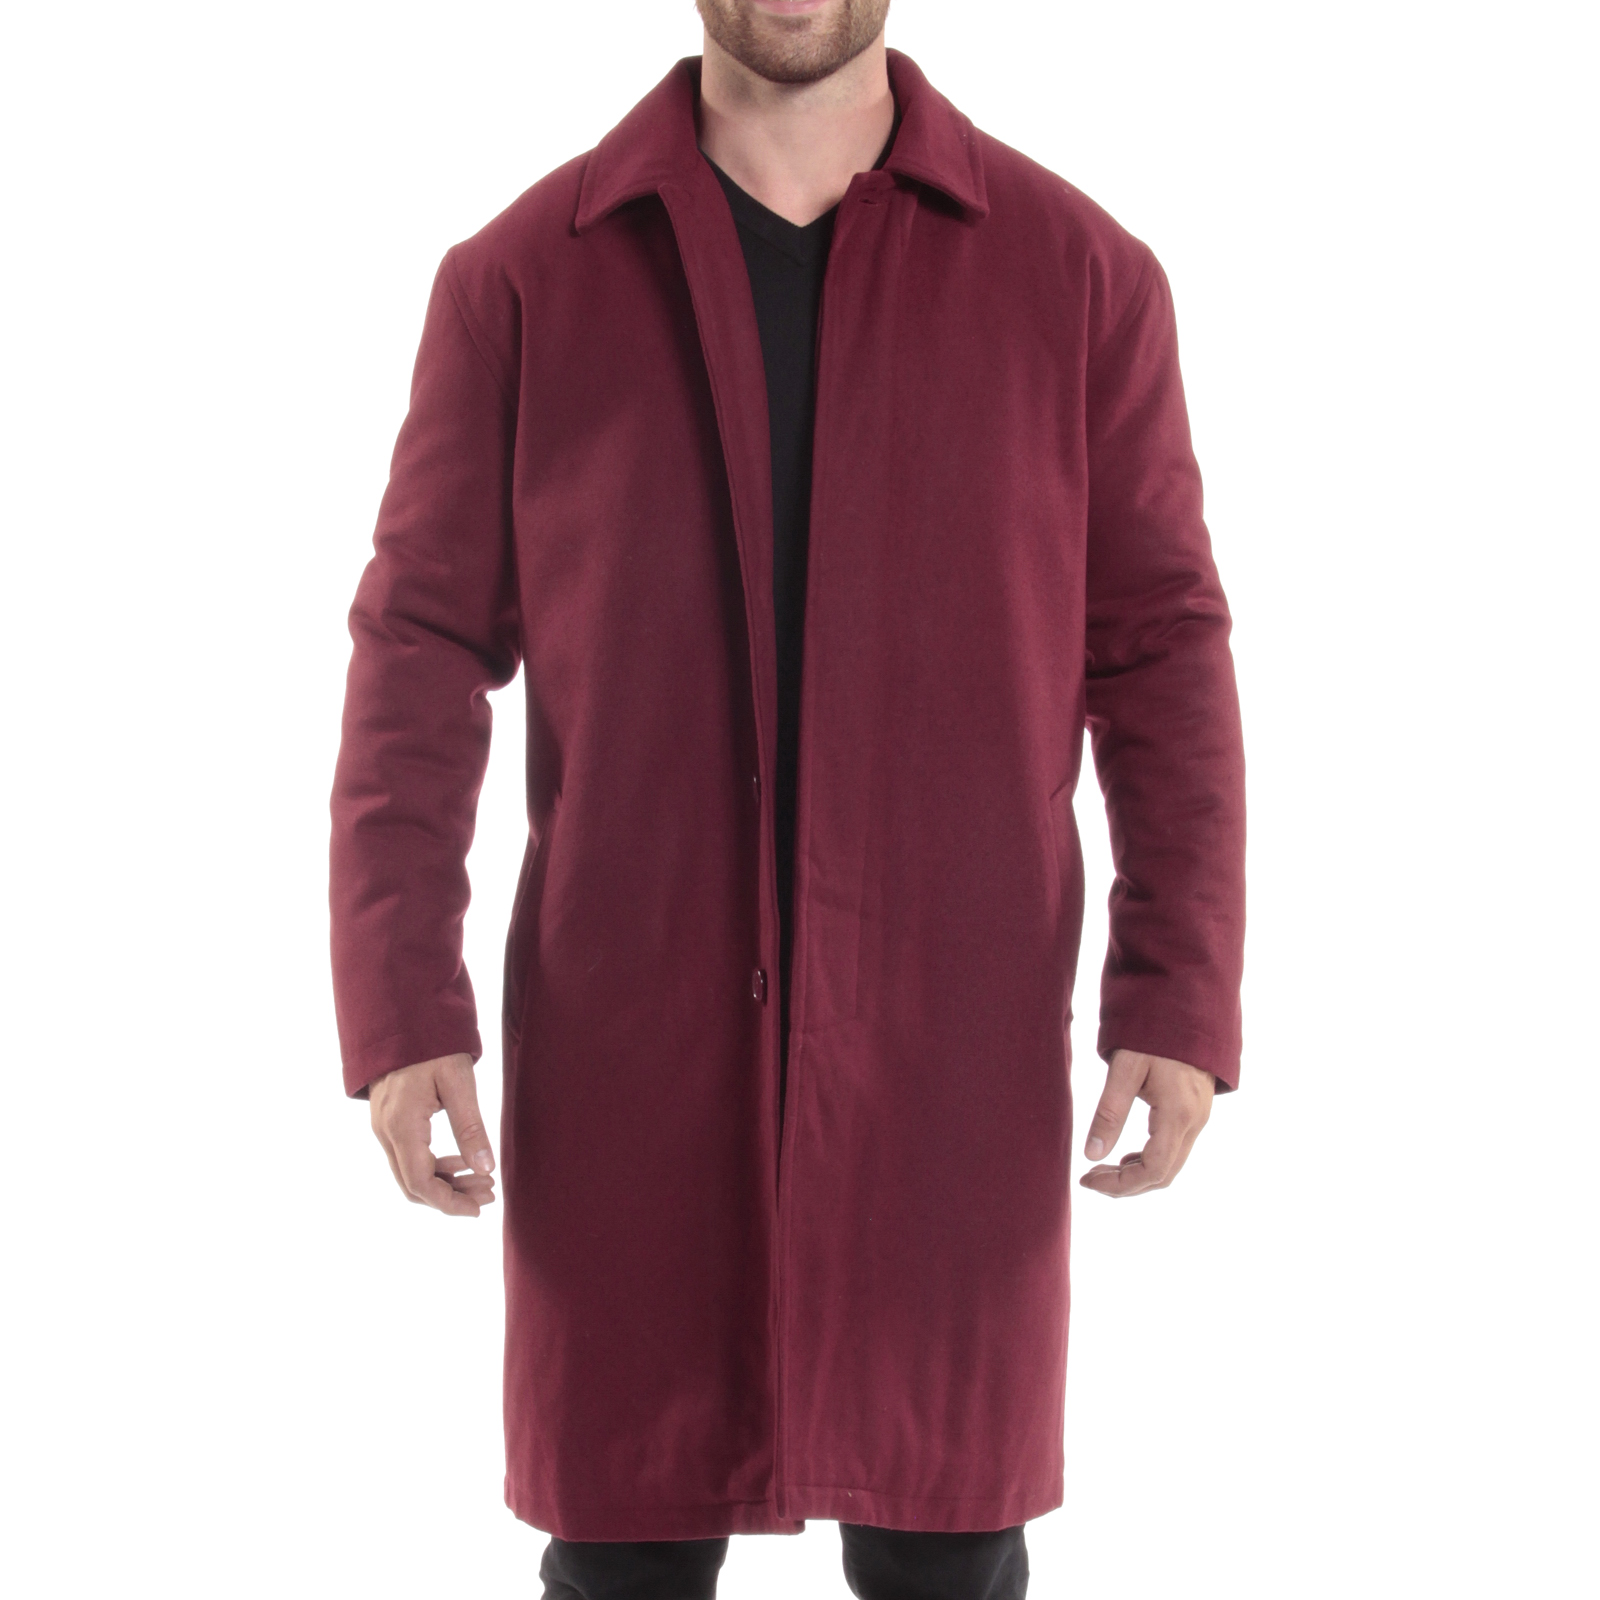 Alpine-Swiss-Mens-Zach-Knee-Length-Jacket-Top-Coat-Trench-Wool-Blend-Overcoat thumbnail 28